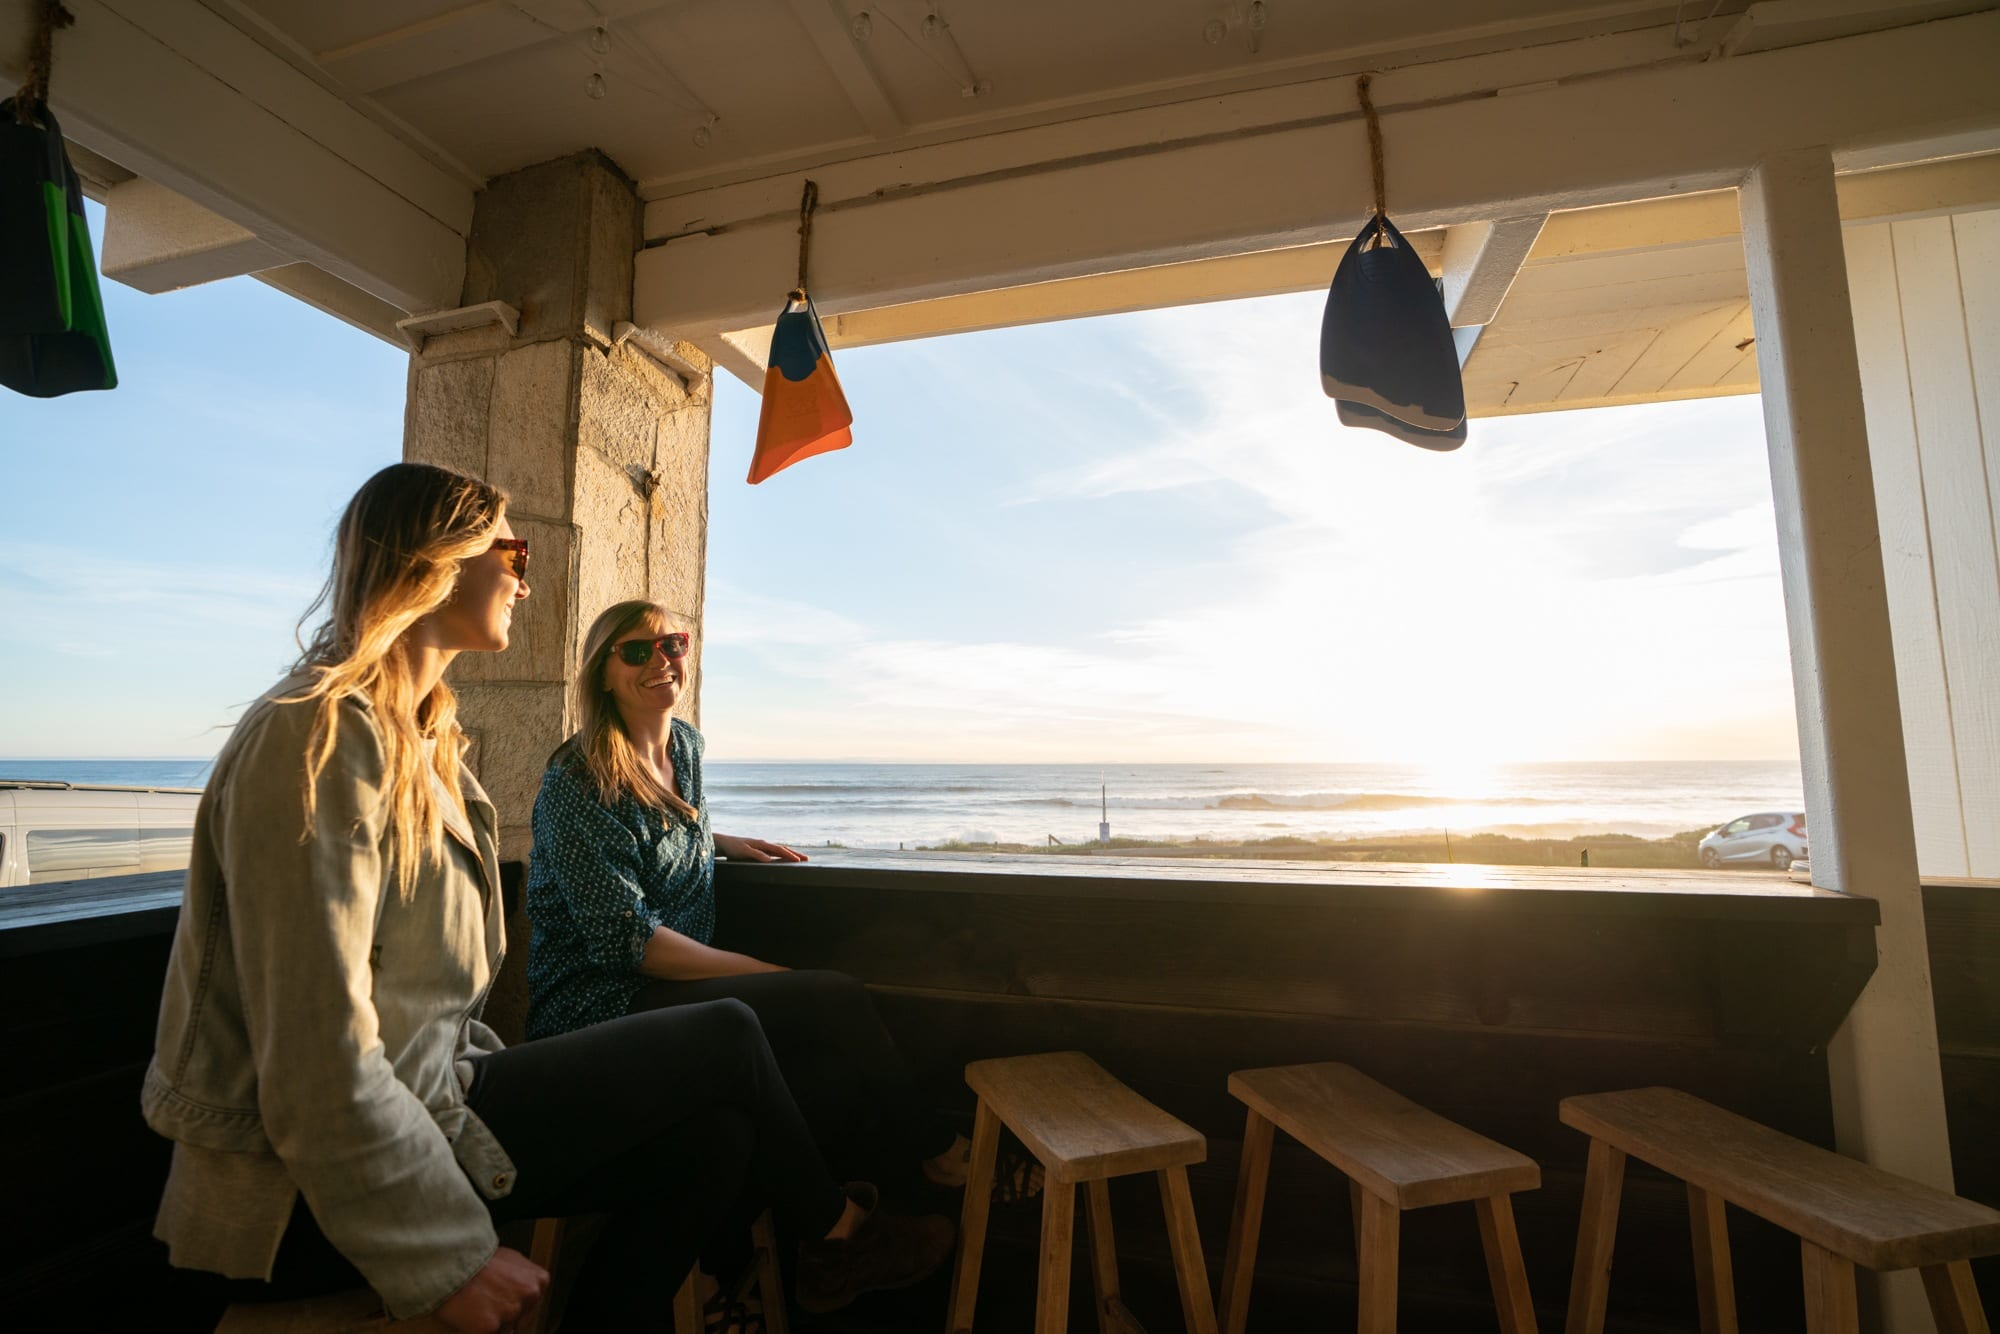 Cambria Beach Lodge // Plan a 6-day California coast road trip from Ventura to Cambria with this itinerary packed with outdoor adventure, amazing food, and unique places to stay.